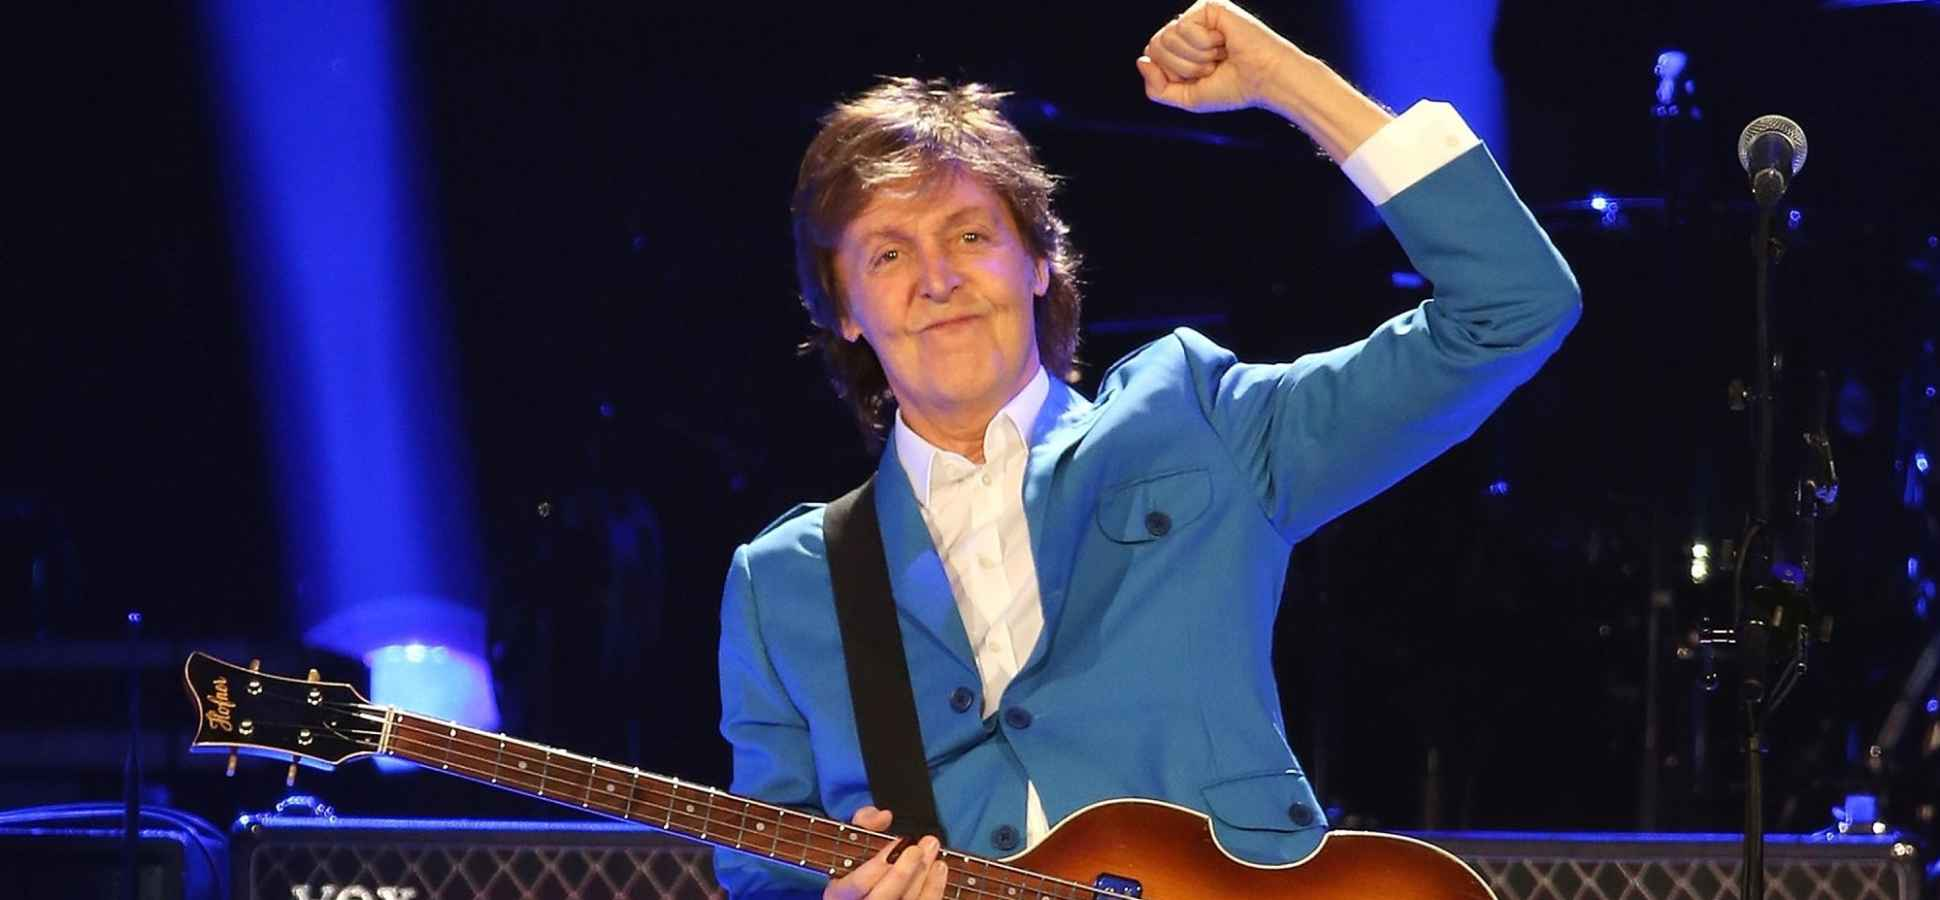 18 Paul McCartney Quotes That Will Inspire You to Greatness